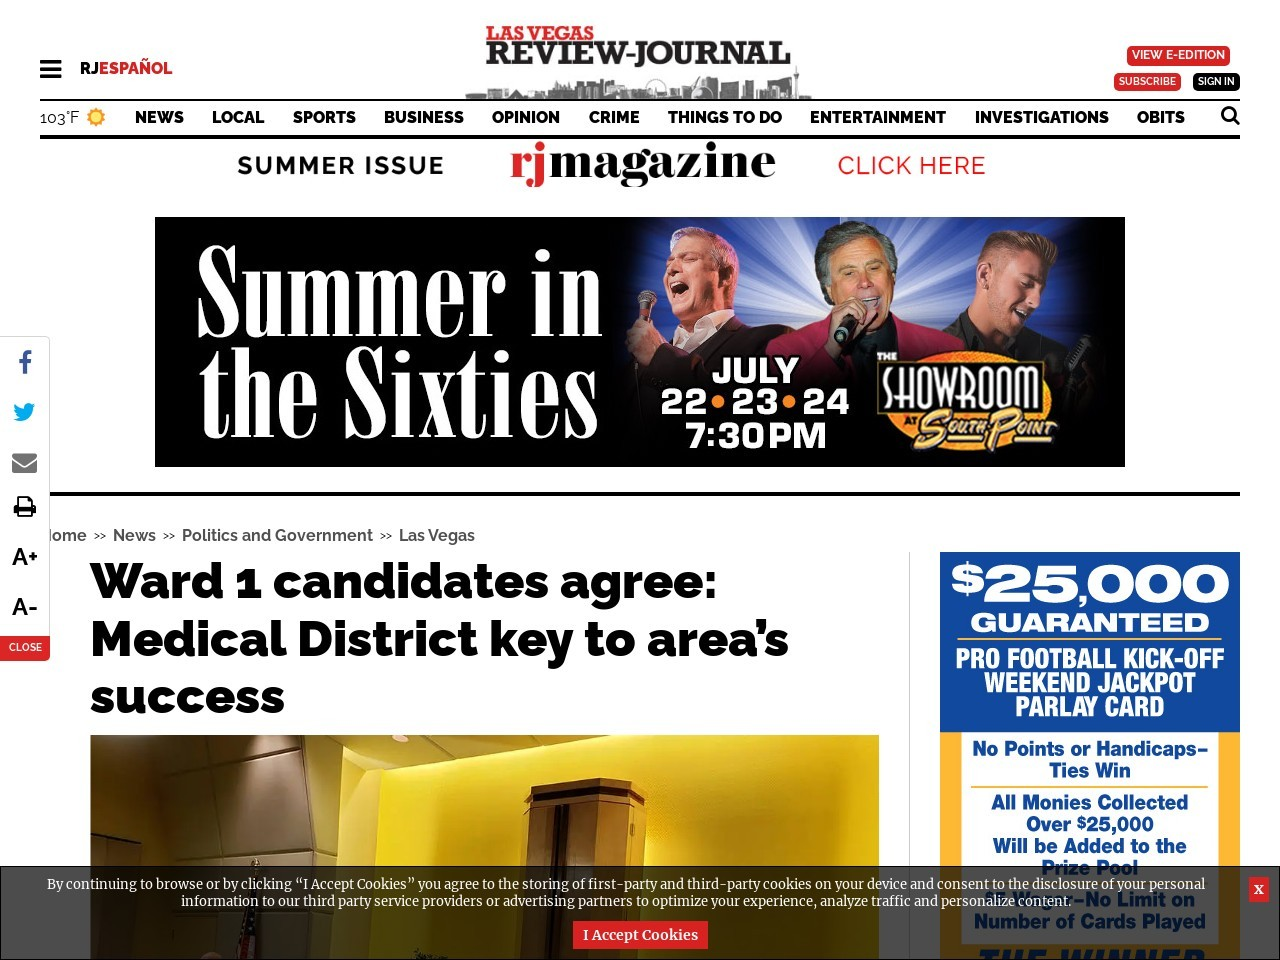 Ward 1 candidates agree: Medical District key to area's success